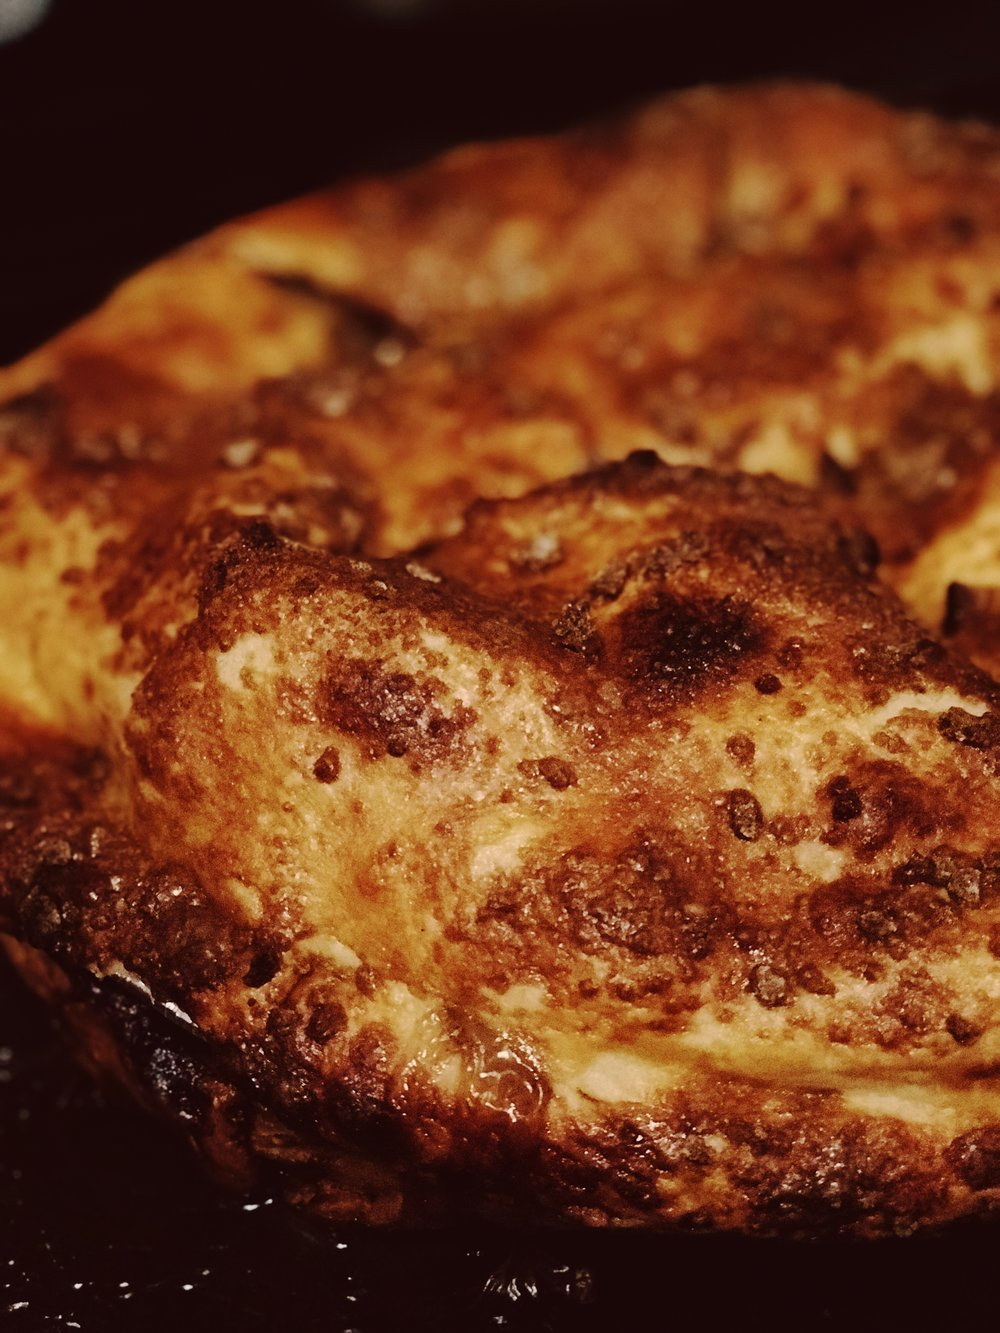 Beautiful, crispy crust